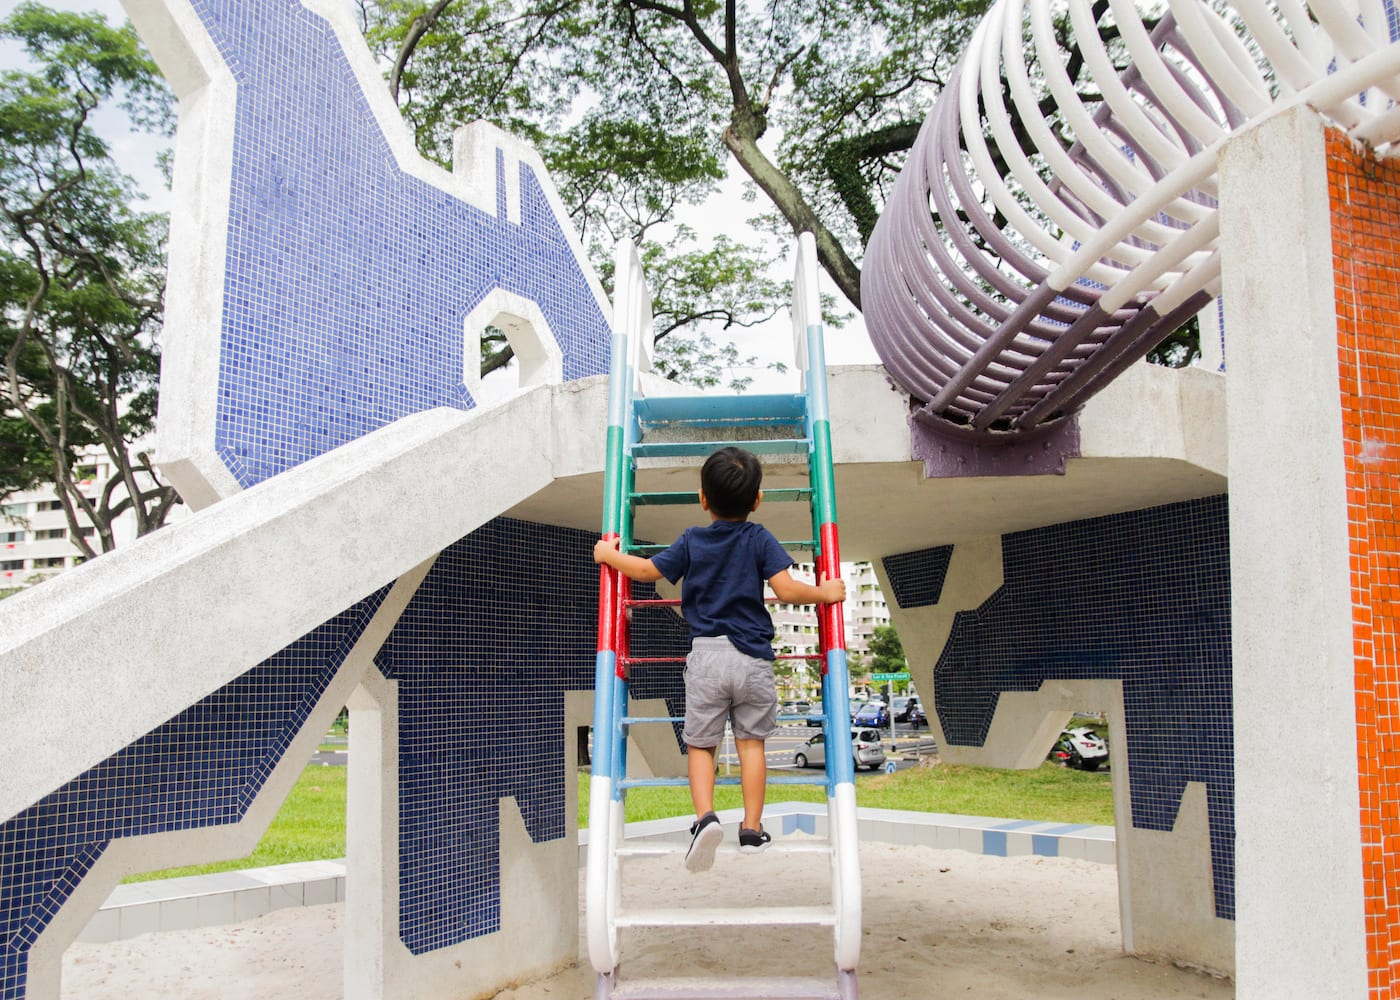 Cool playgrounds to check out